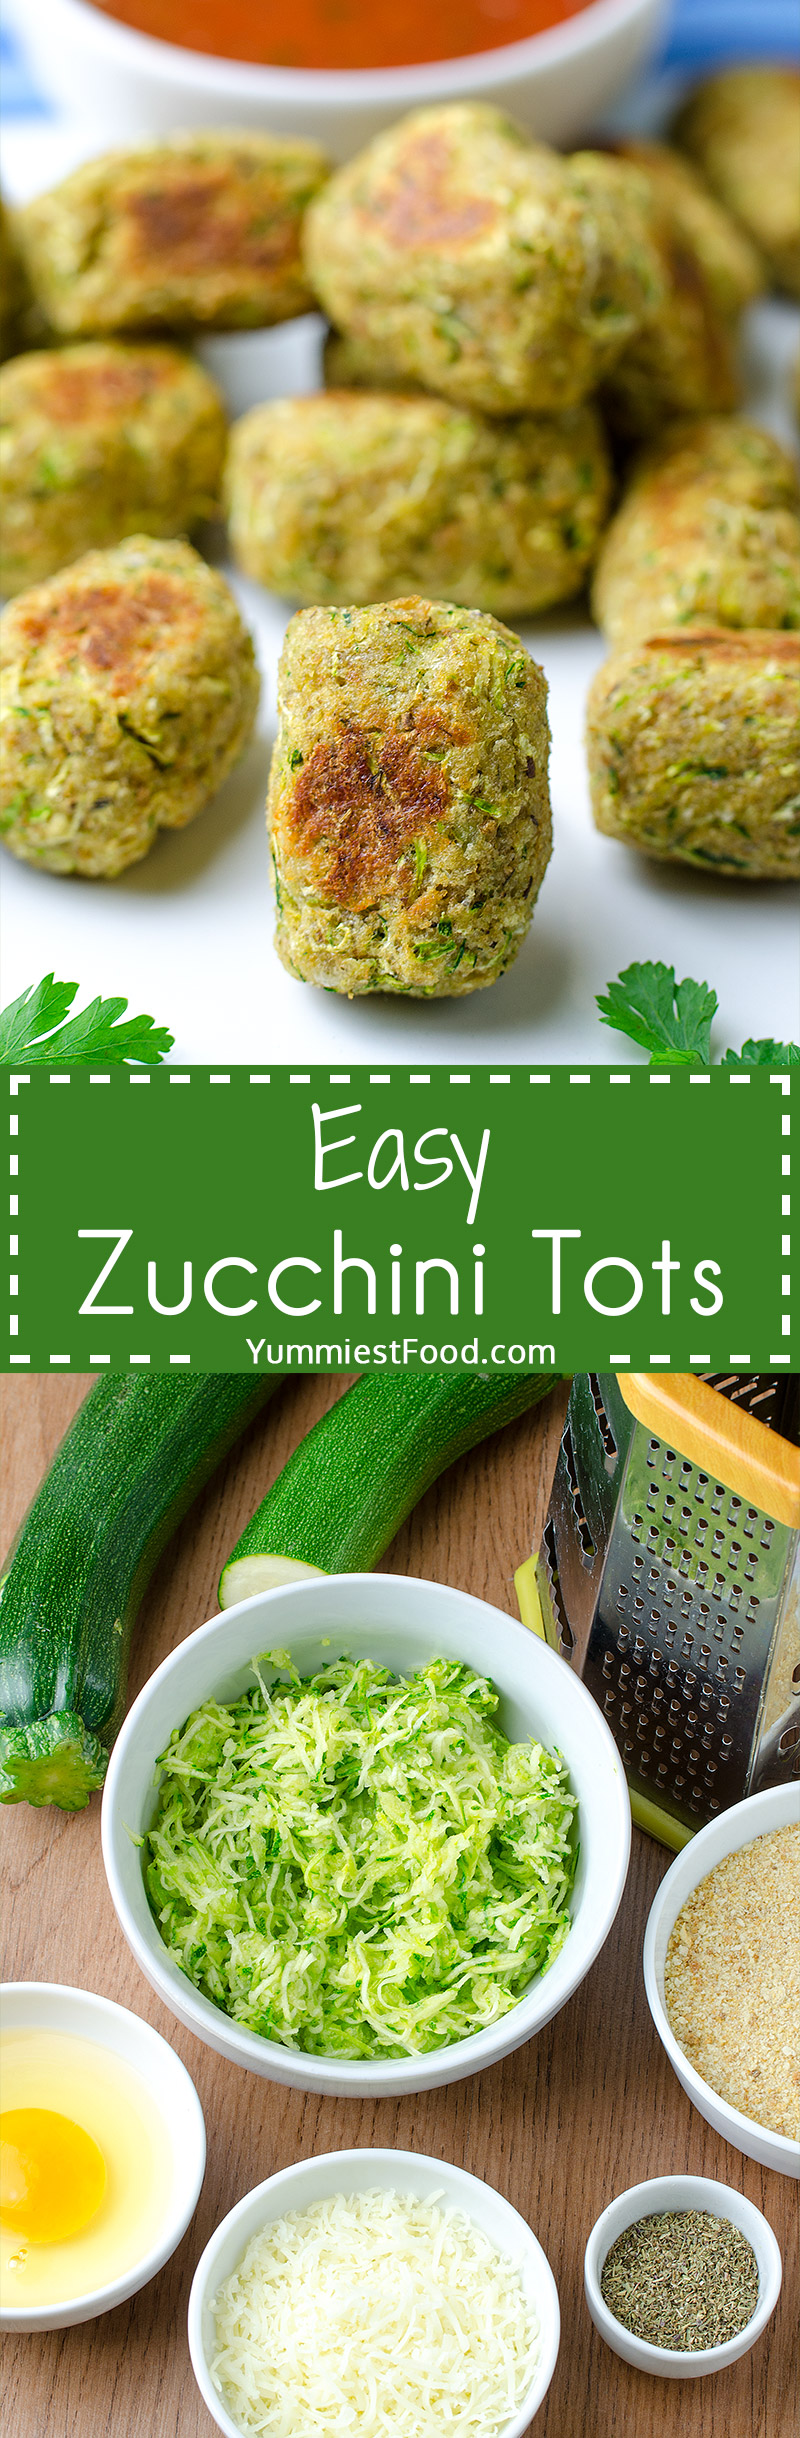 EASY ZUCCHINI TOTS - Just 5 ingredients and only 5 minutes of prepare